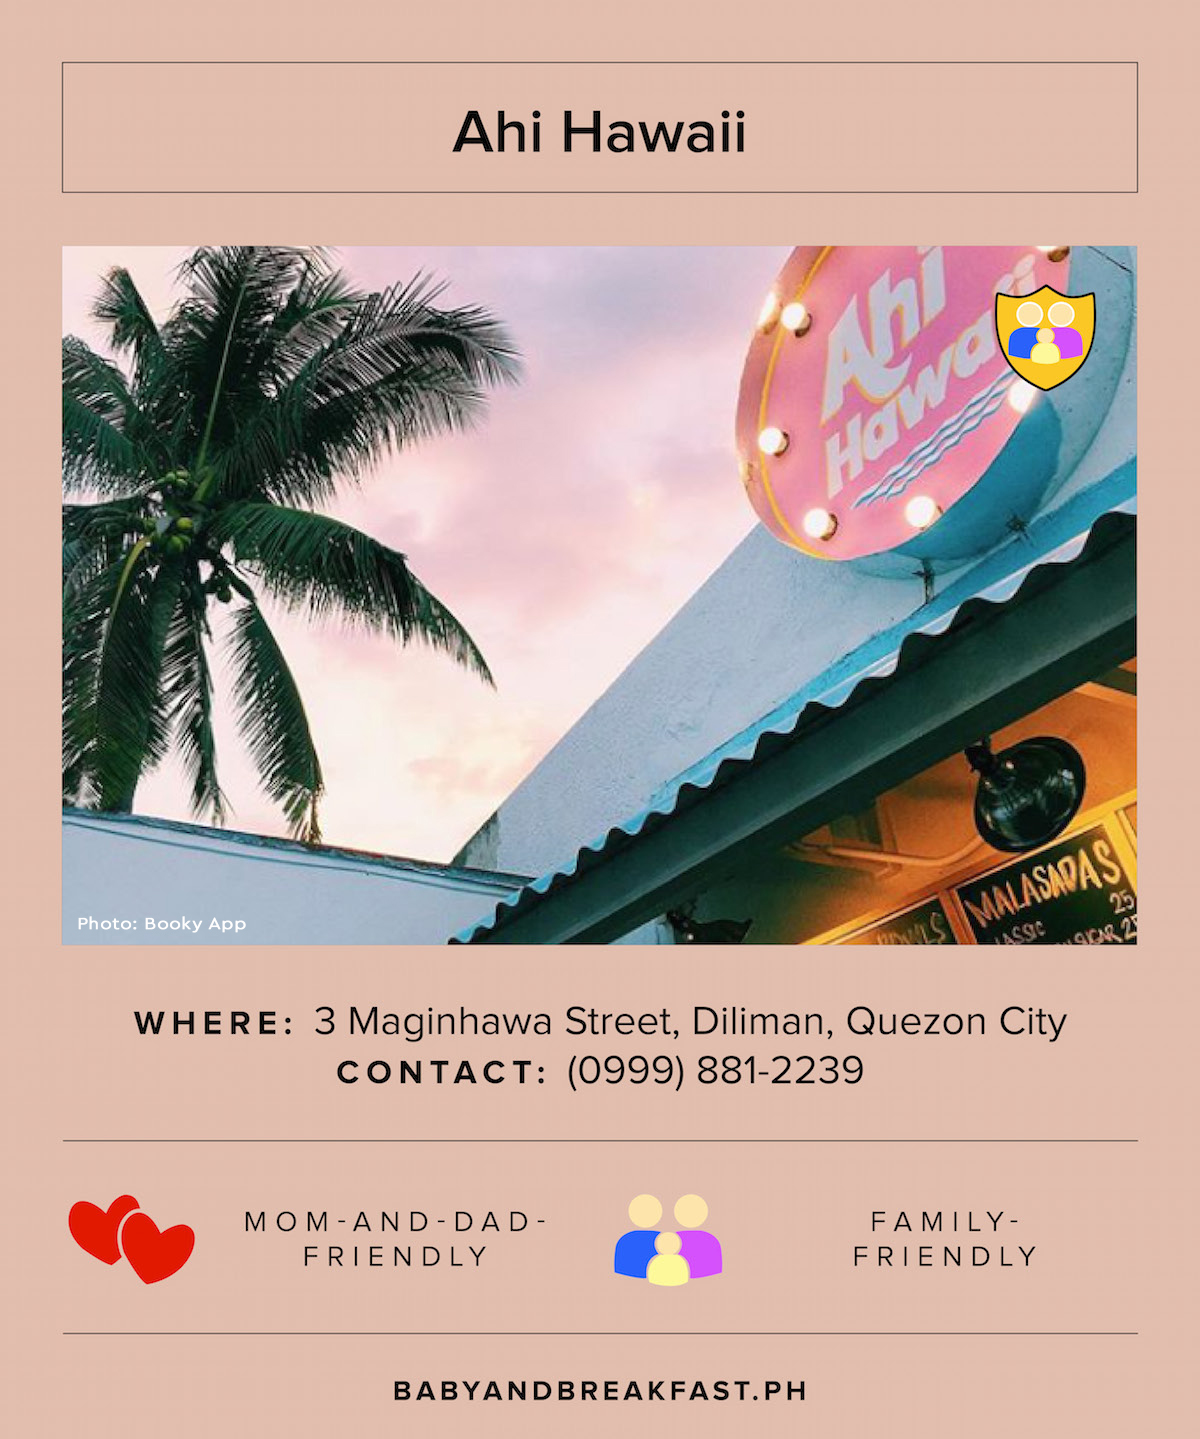 Ahi Hawaii Where: 3 Maginhawa Street, Diliman, Quezon City Contact: (0999) 881-2239 Family-Friendly Photo: Booky App